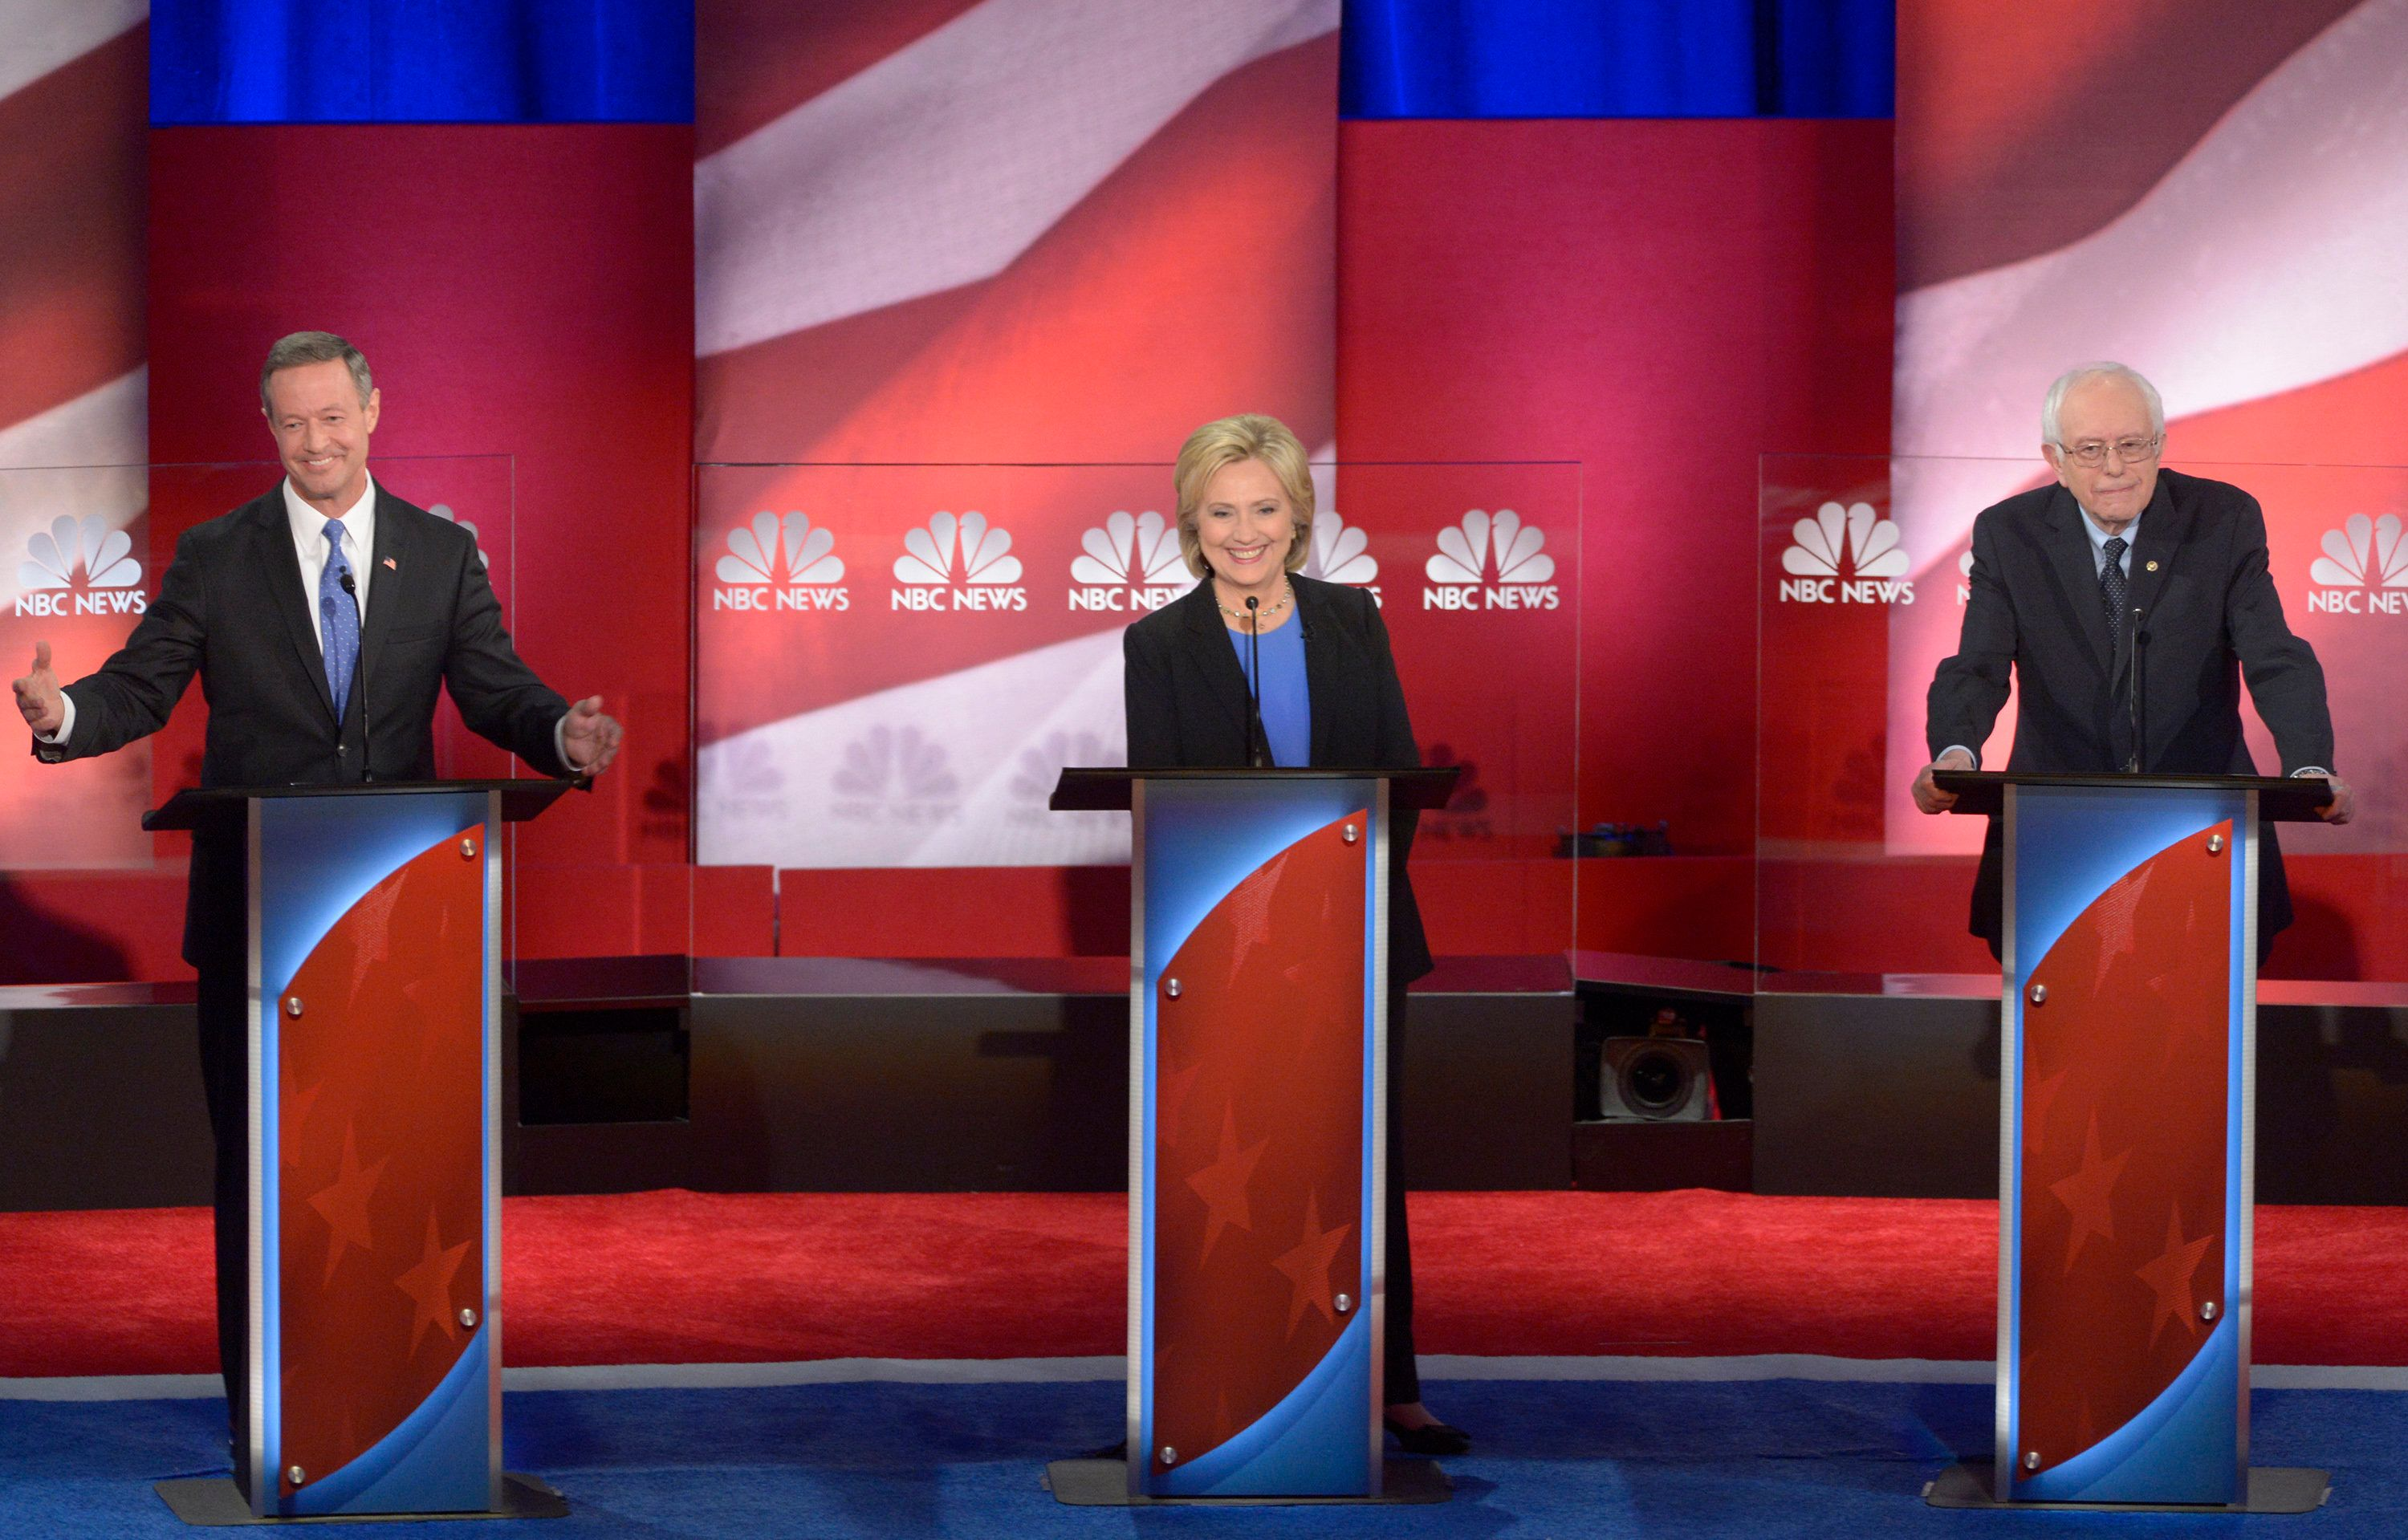 Martin O'Malley, Hillary Clinton and Bernie Sanders appear during theNBCDemocratic debate in South Carolina on Ja